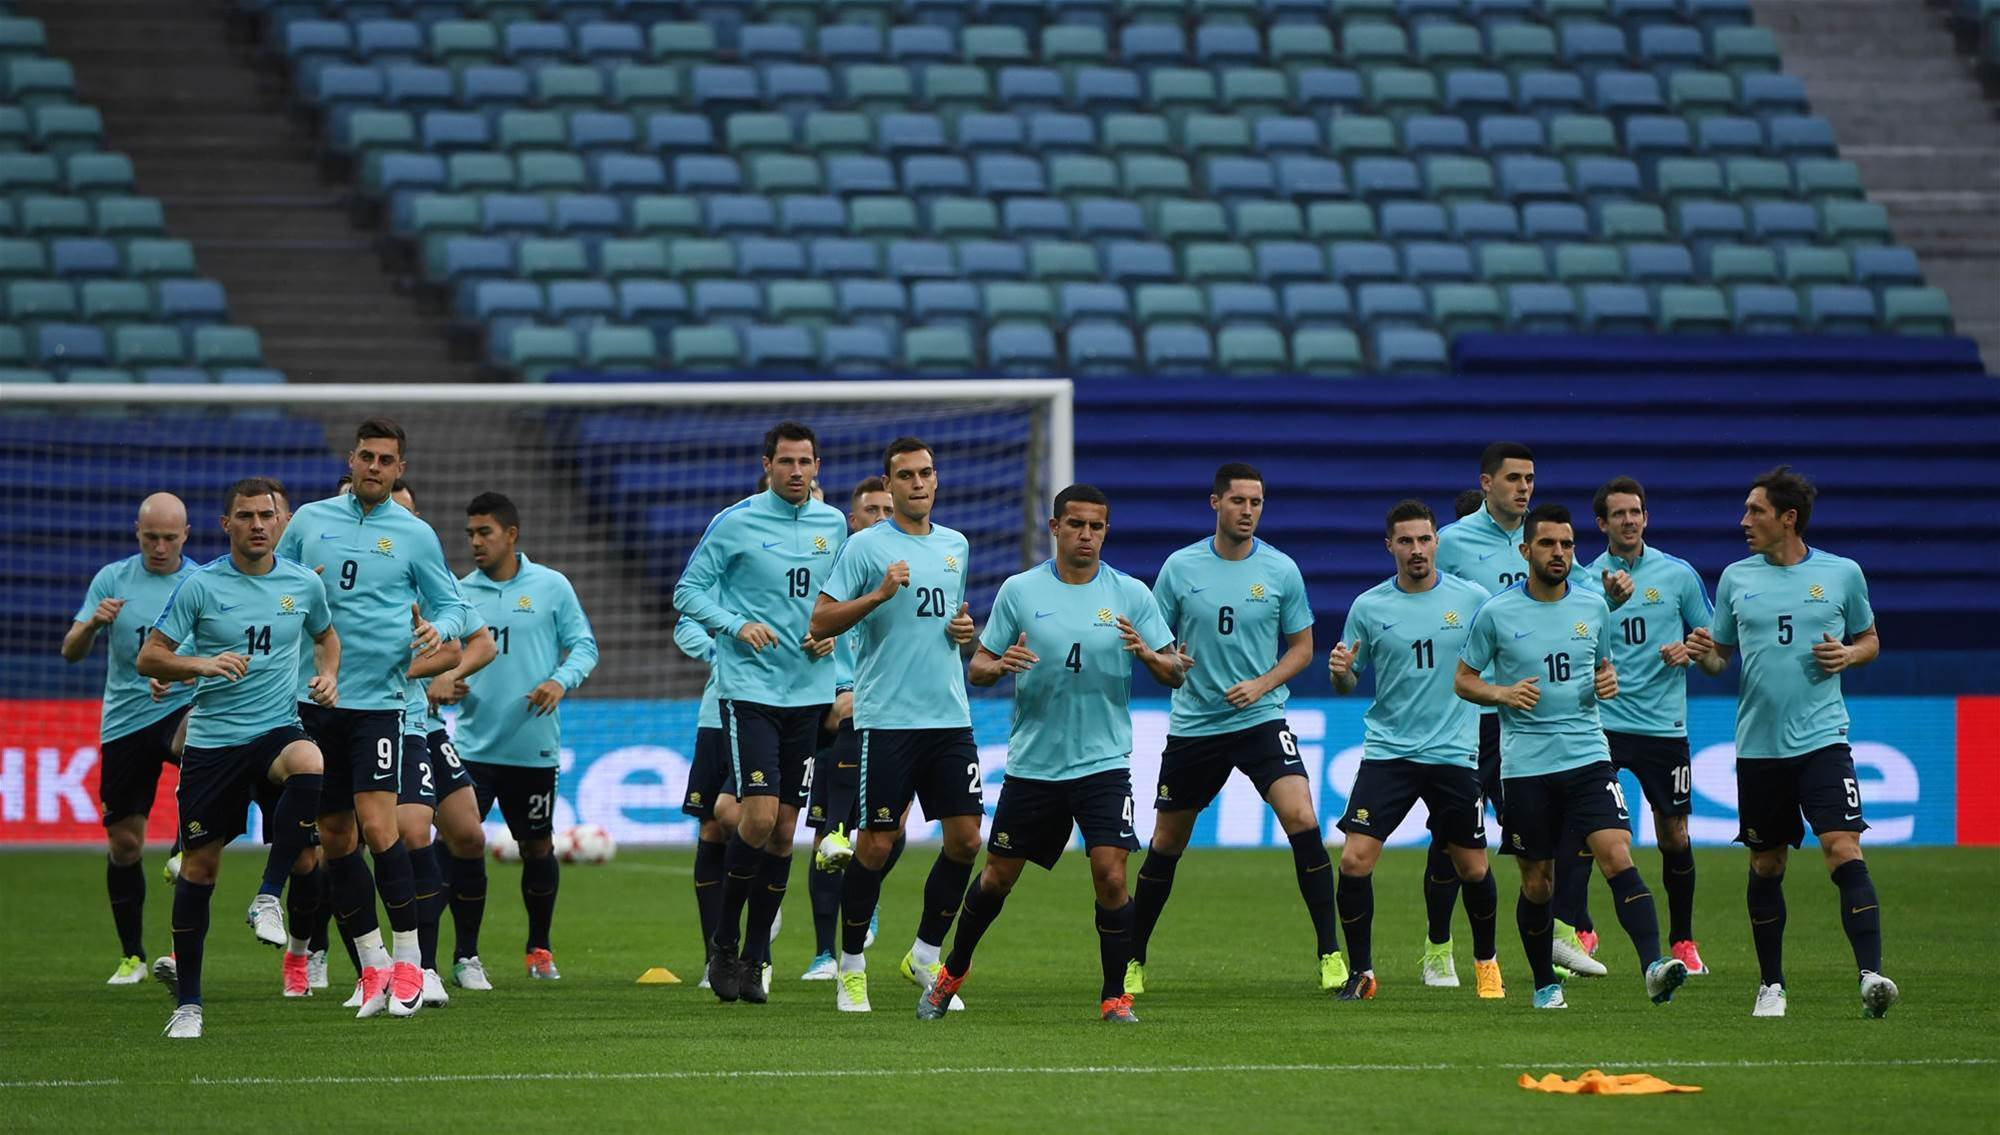 Pic special: Socceroos train in Sochi